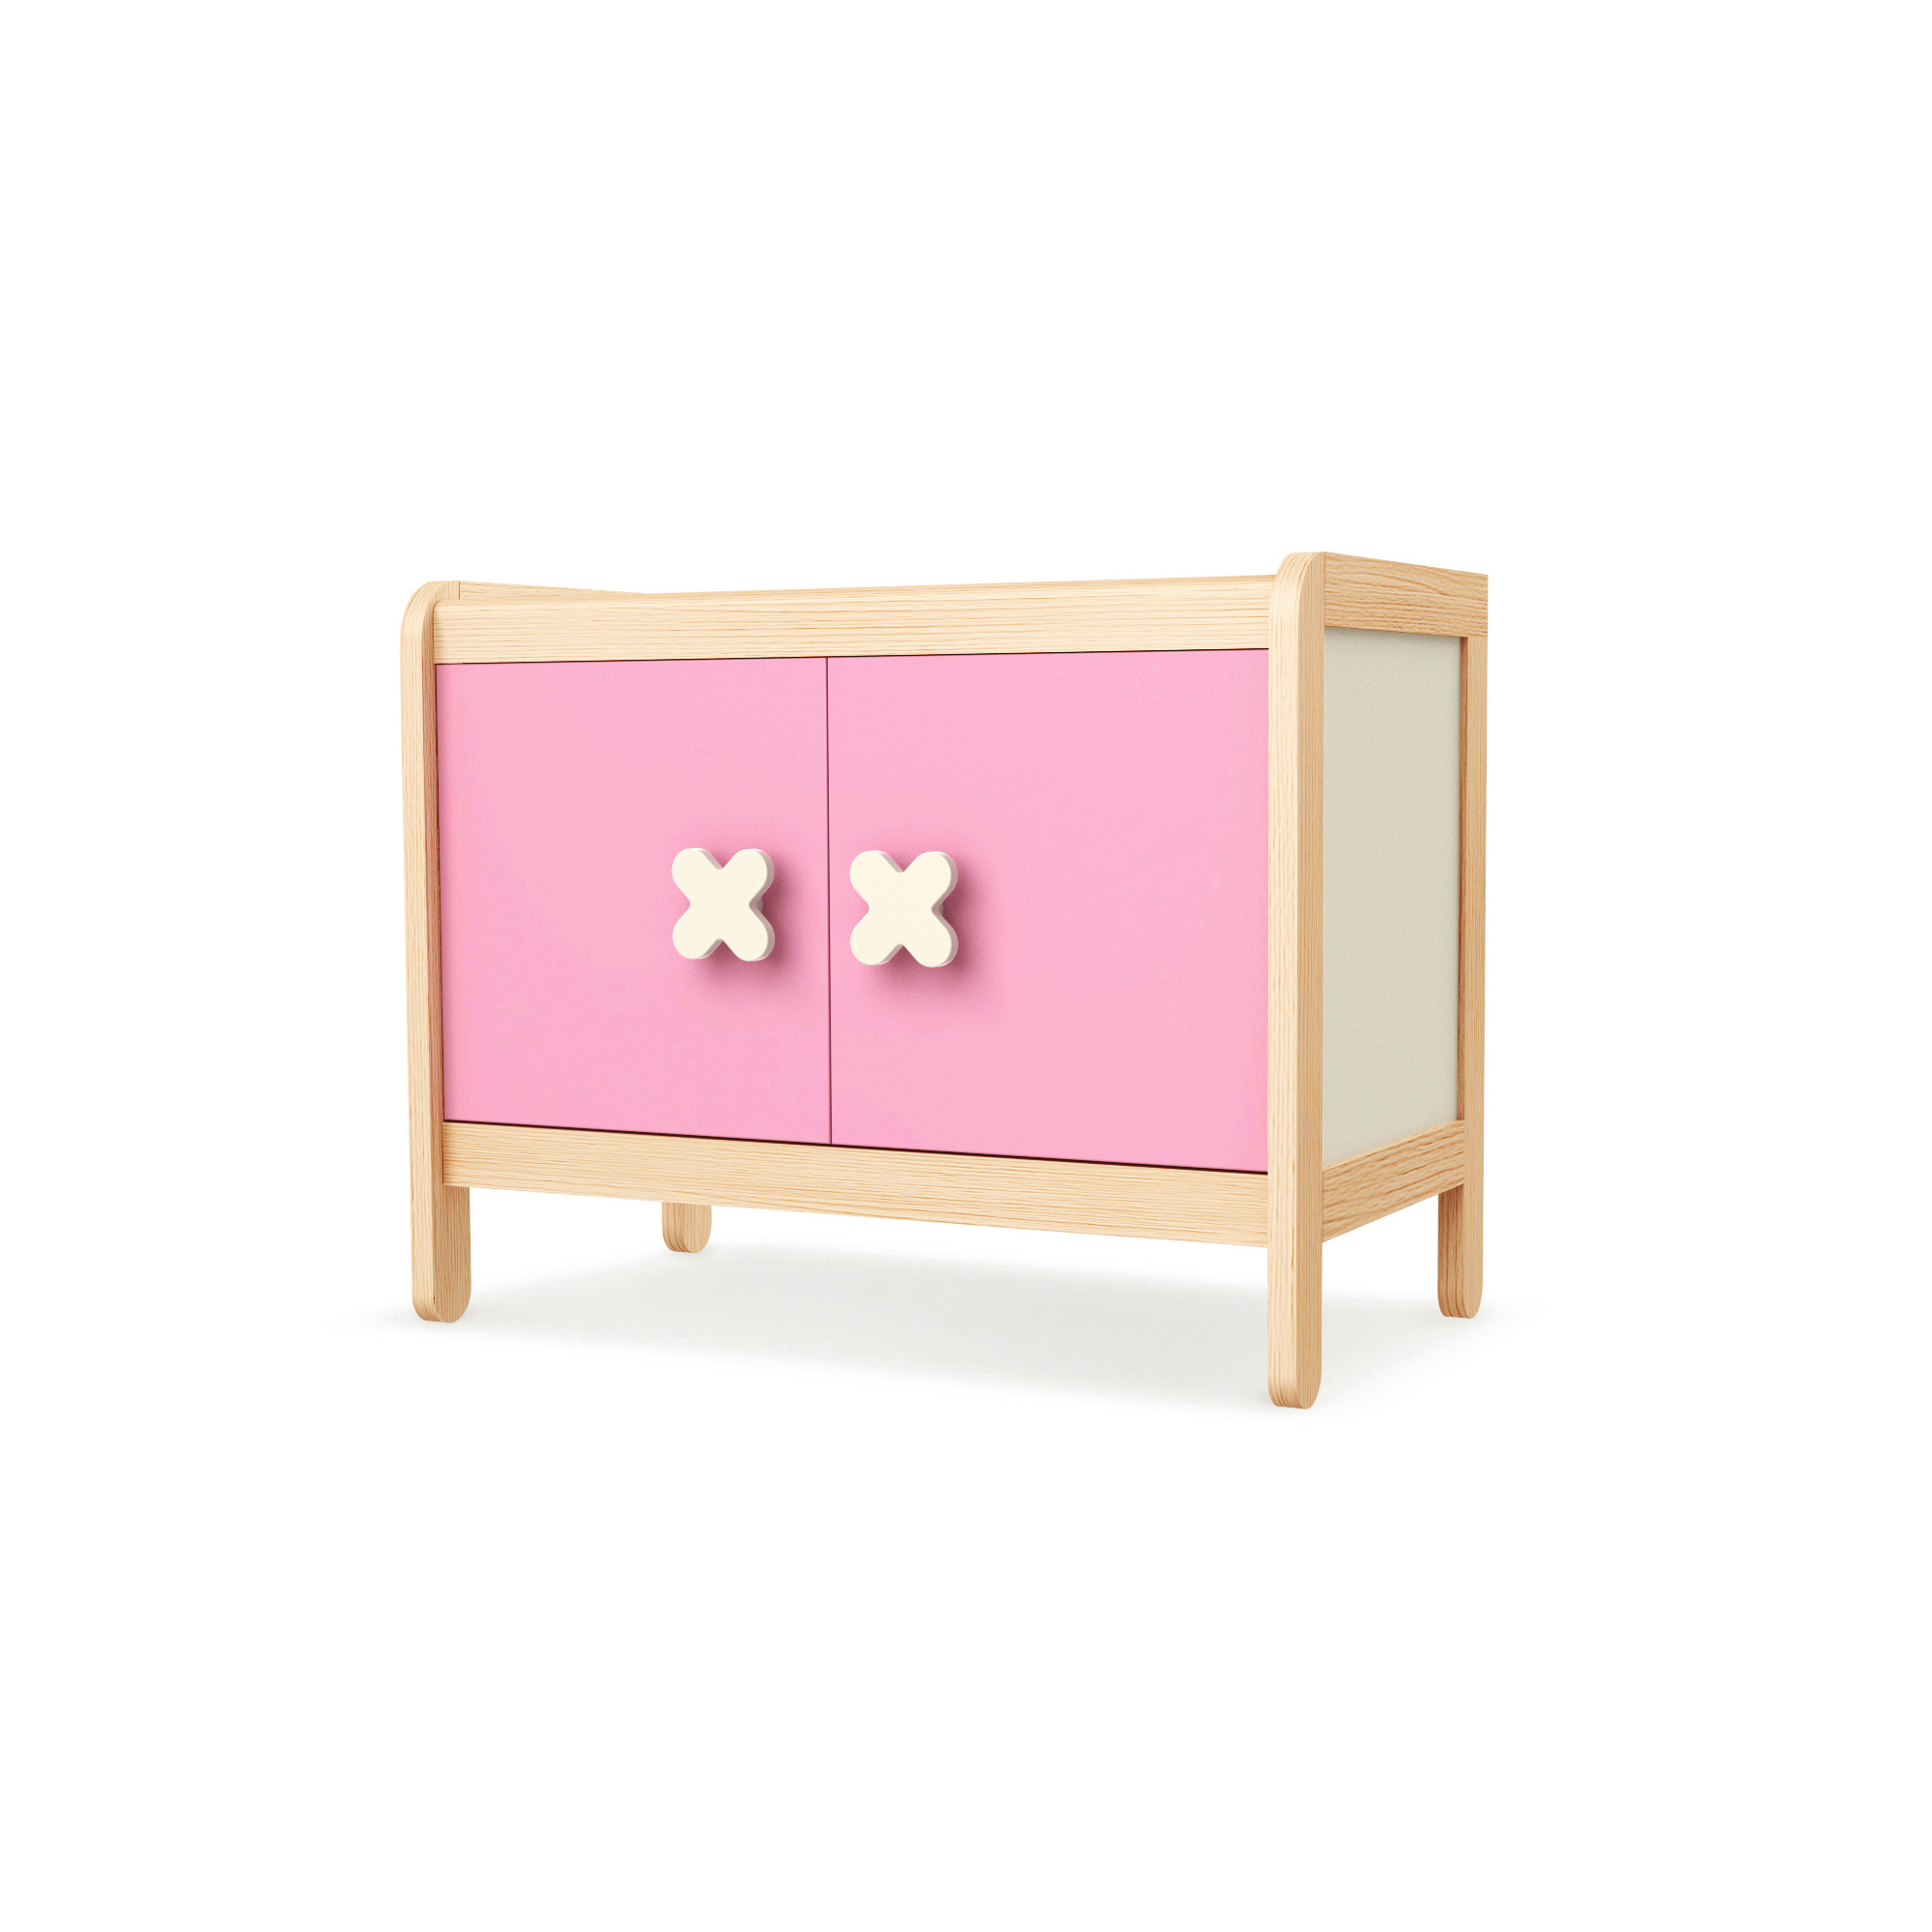 Sideboard Simple Pink, Timoore